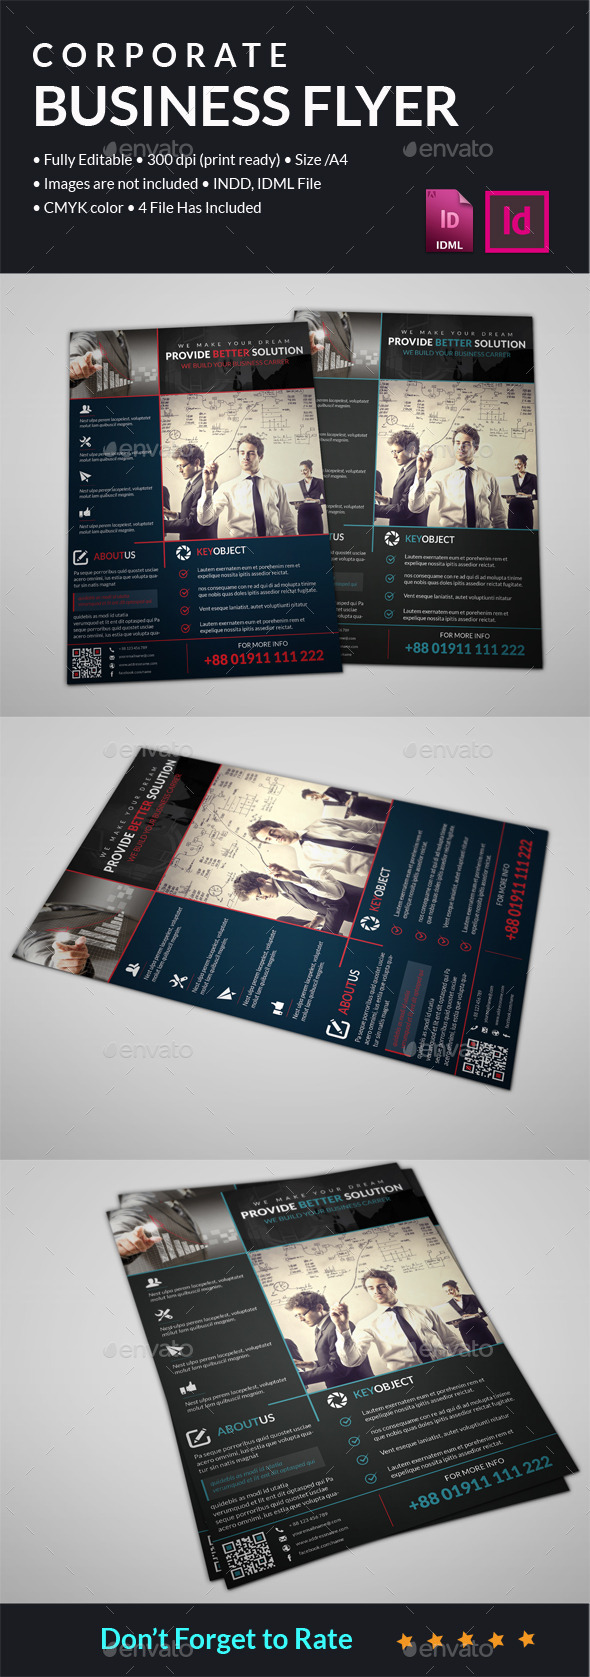 GraphicRiver Corporate Business Flyer 11885507